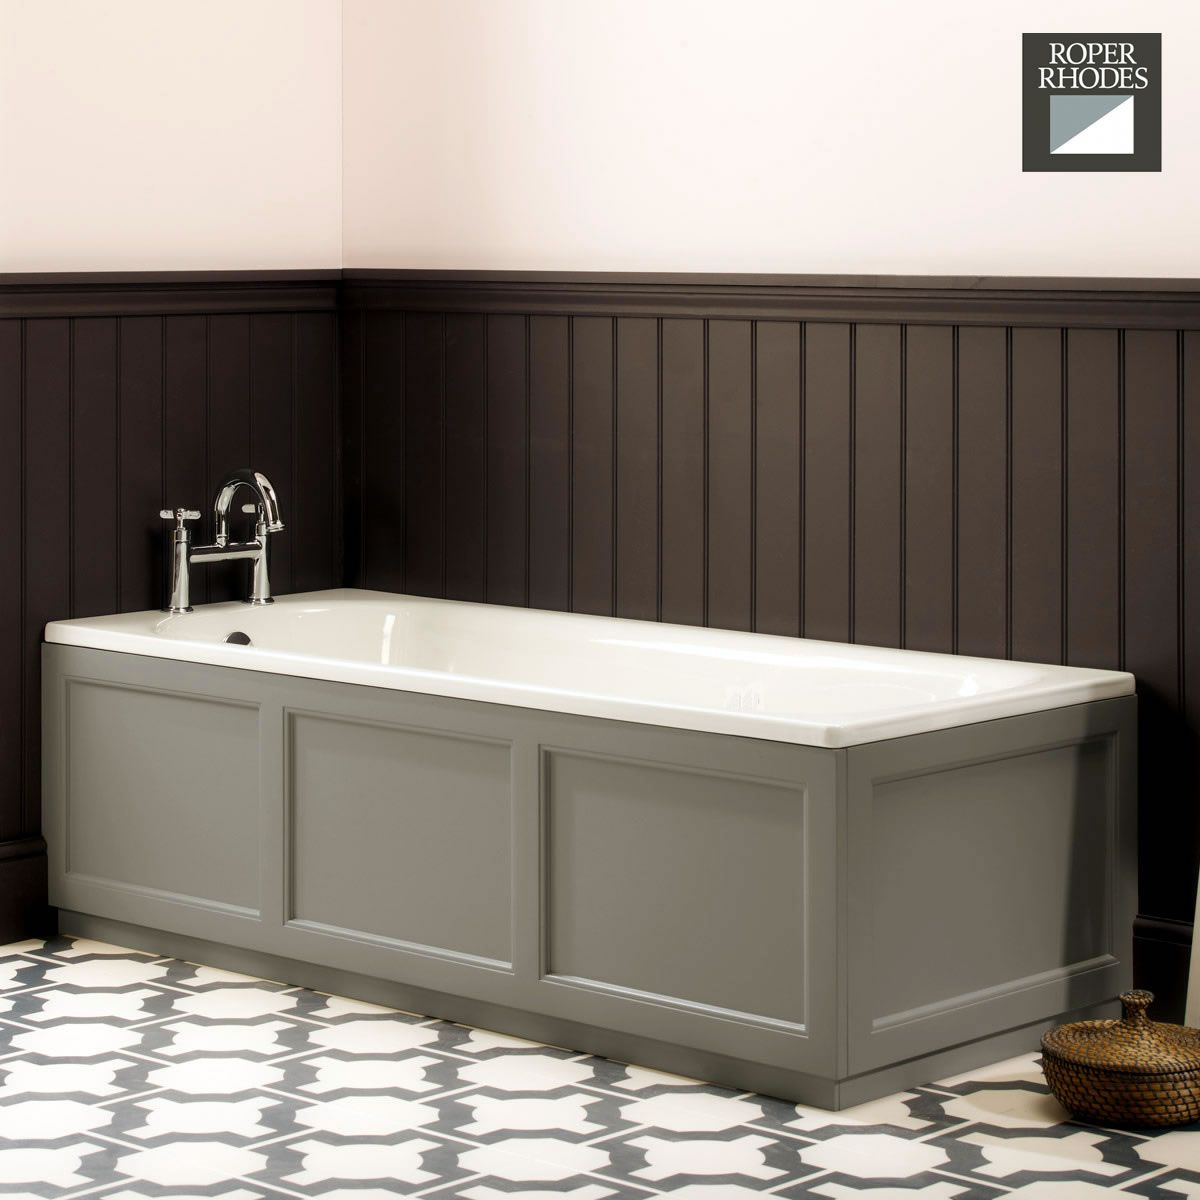 Roper Rhodes Hampton Bath Panels : UK Bathrooms